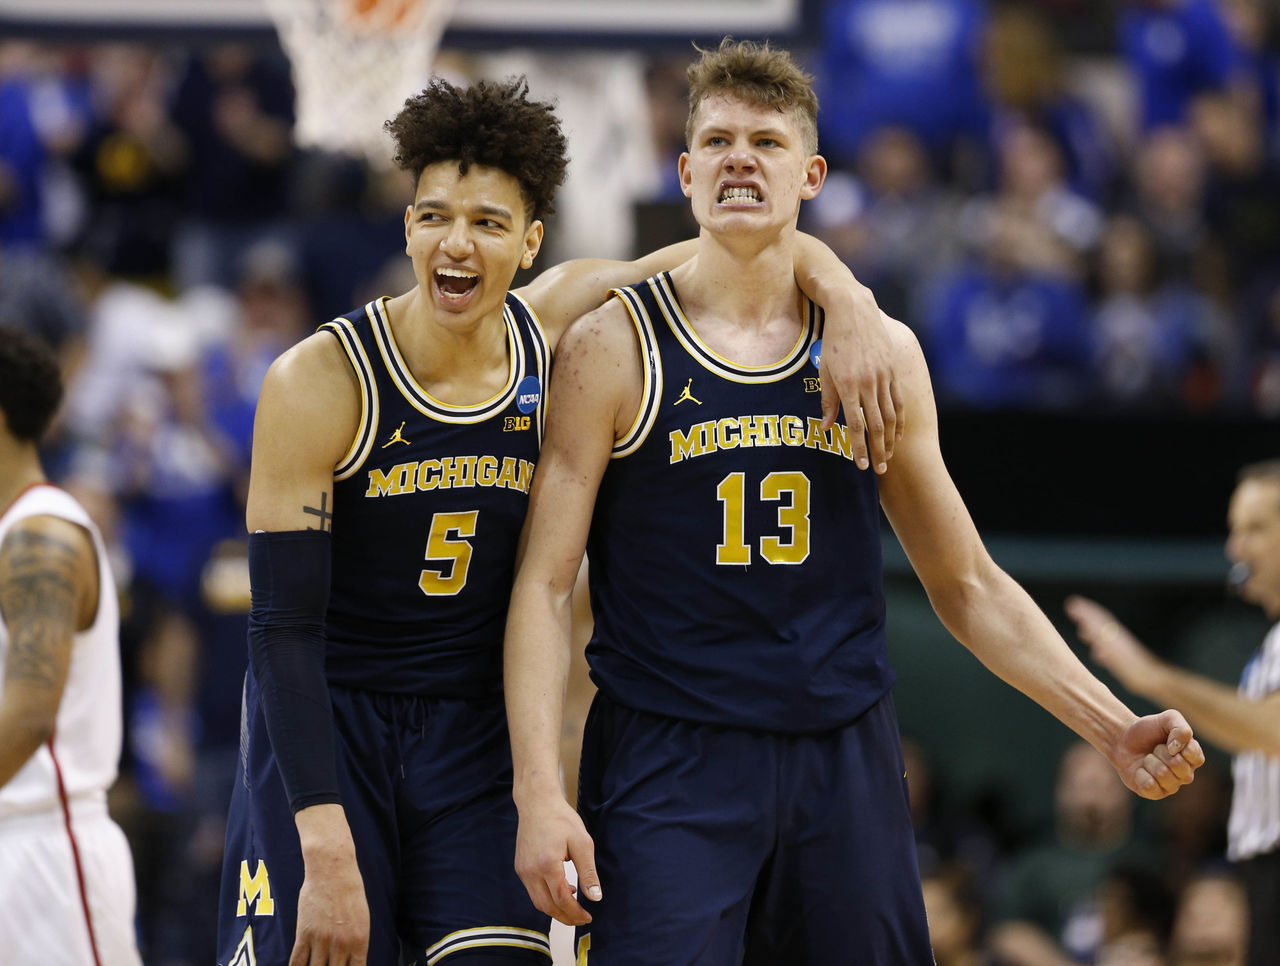 Cropped 2017 03 19t184748z 1818787722 nocid rtrmadp 3 ncaa basketball ncaa tournament second round michigan vs louisville